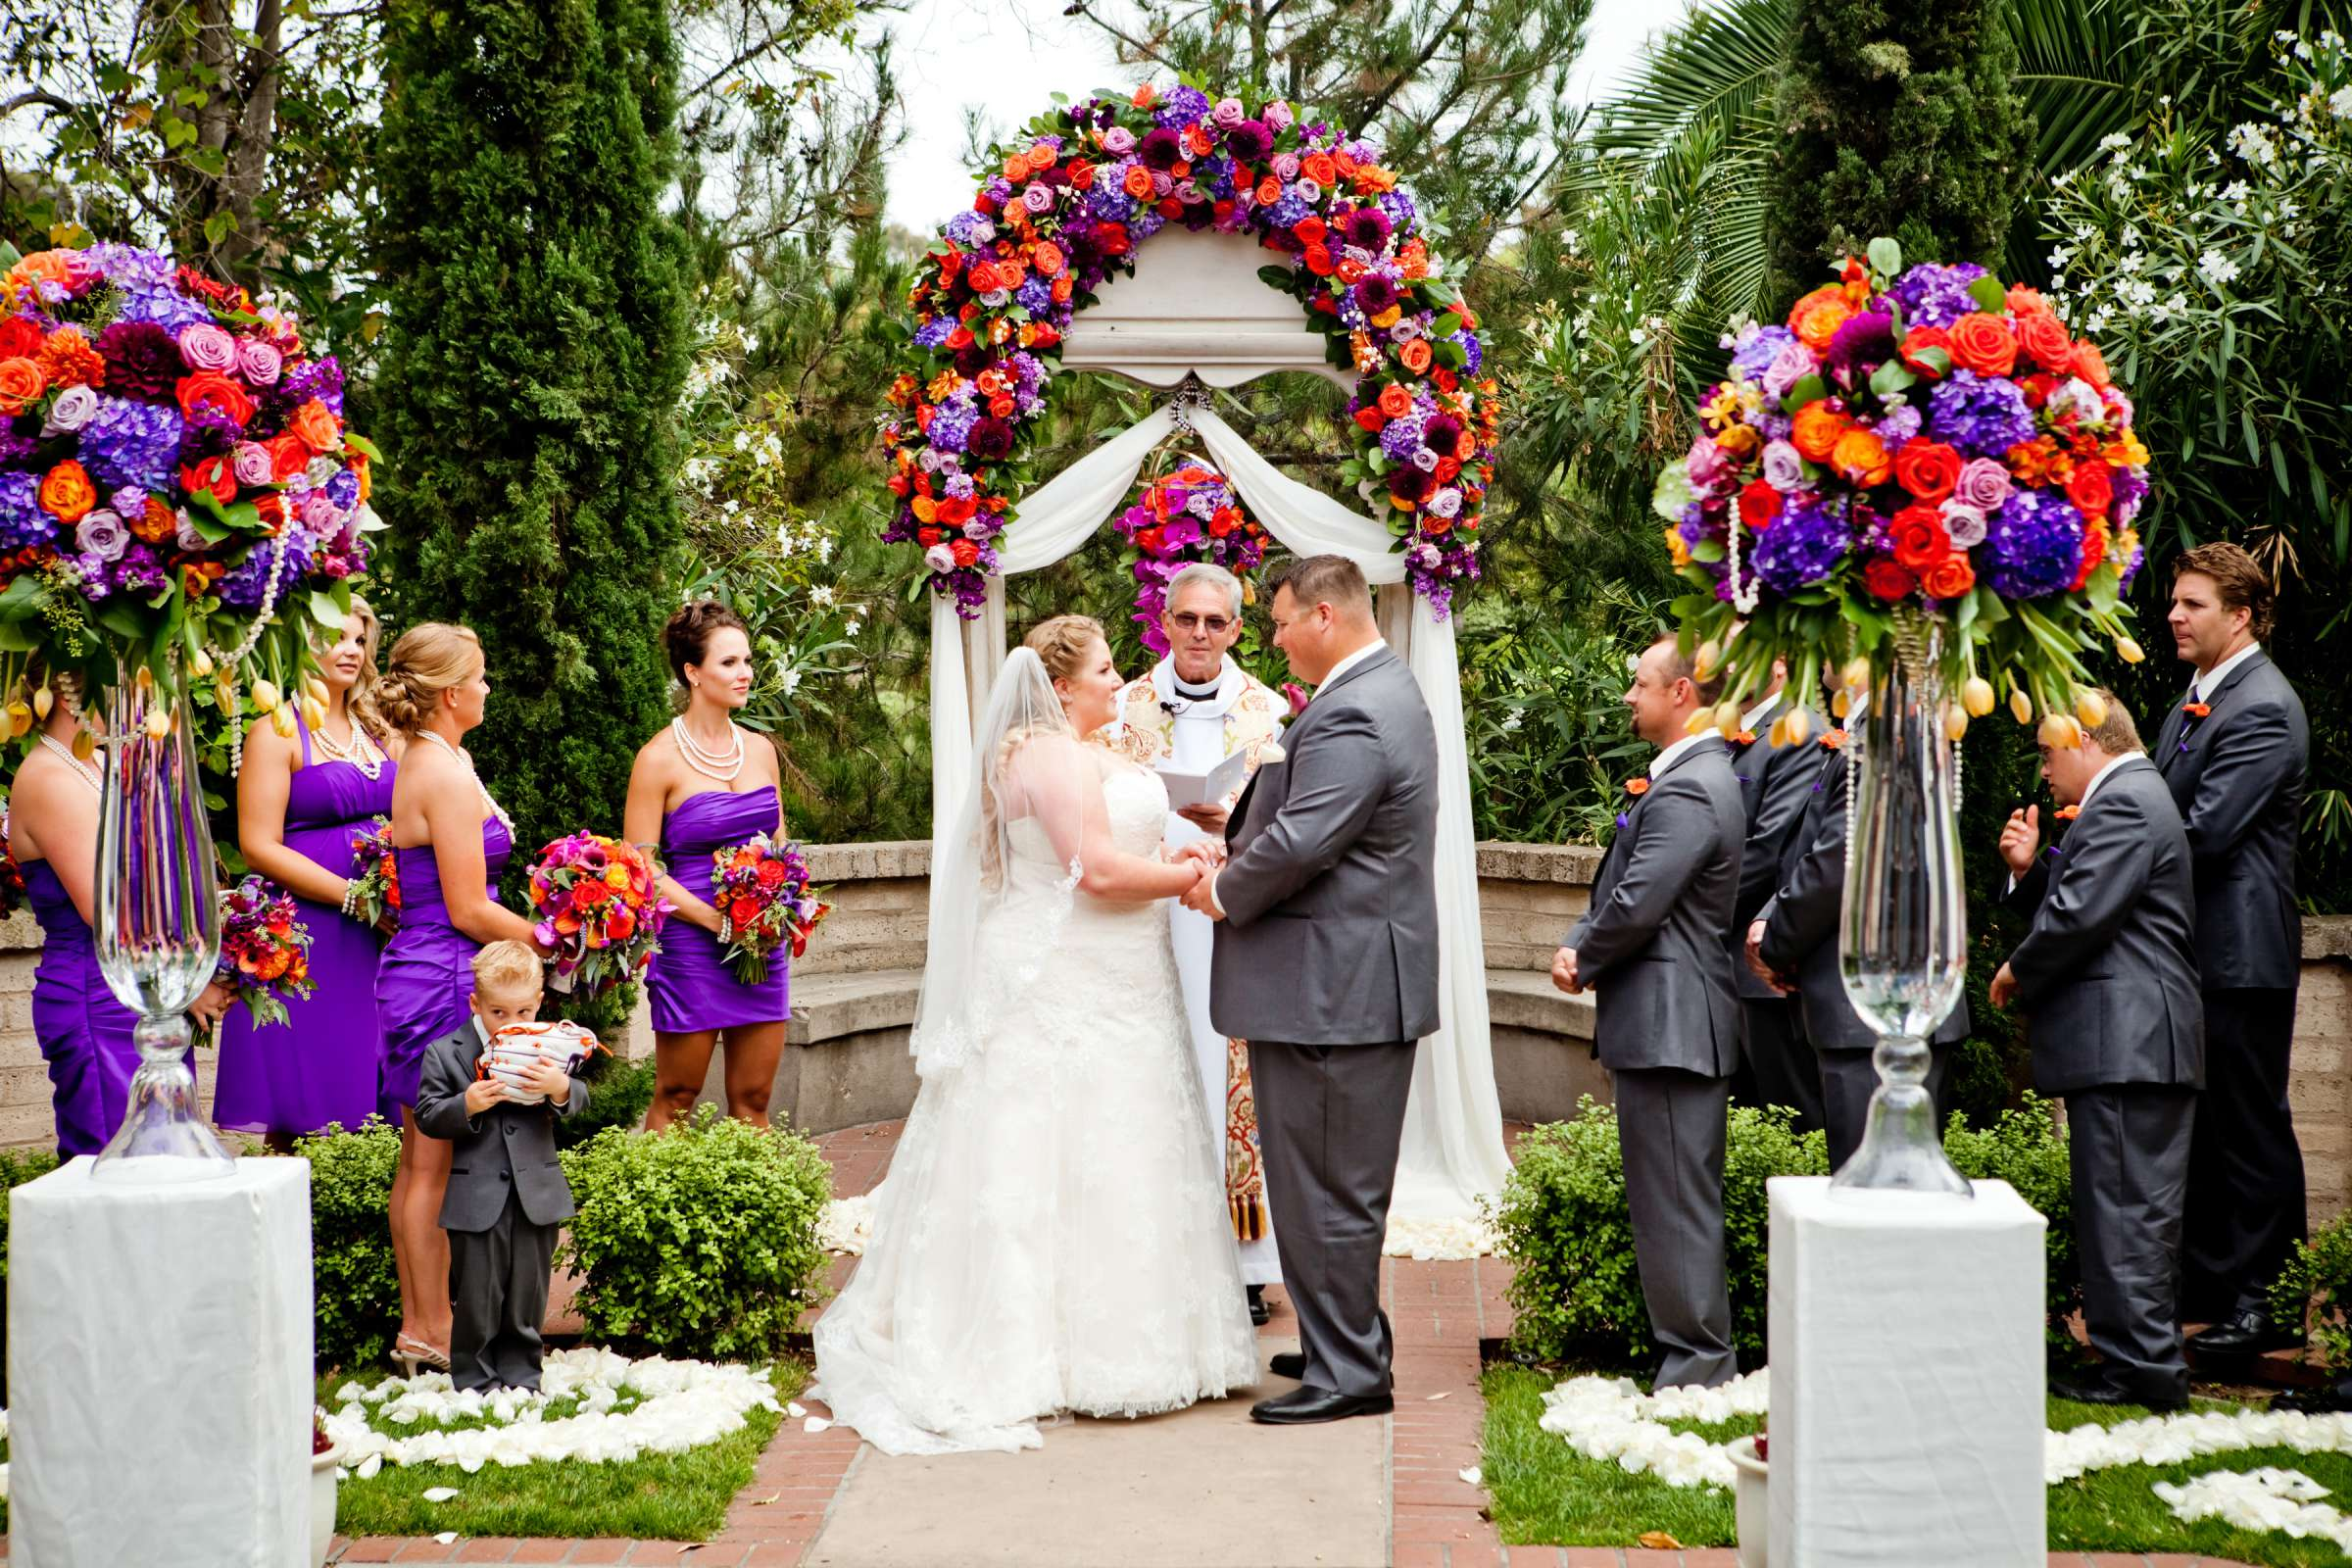 The Prado Wedding coordinated by Monarch Weddings, Eileen and Robbie Wedding Photo #45 by True Photography